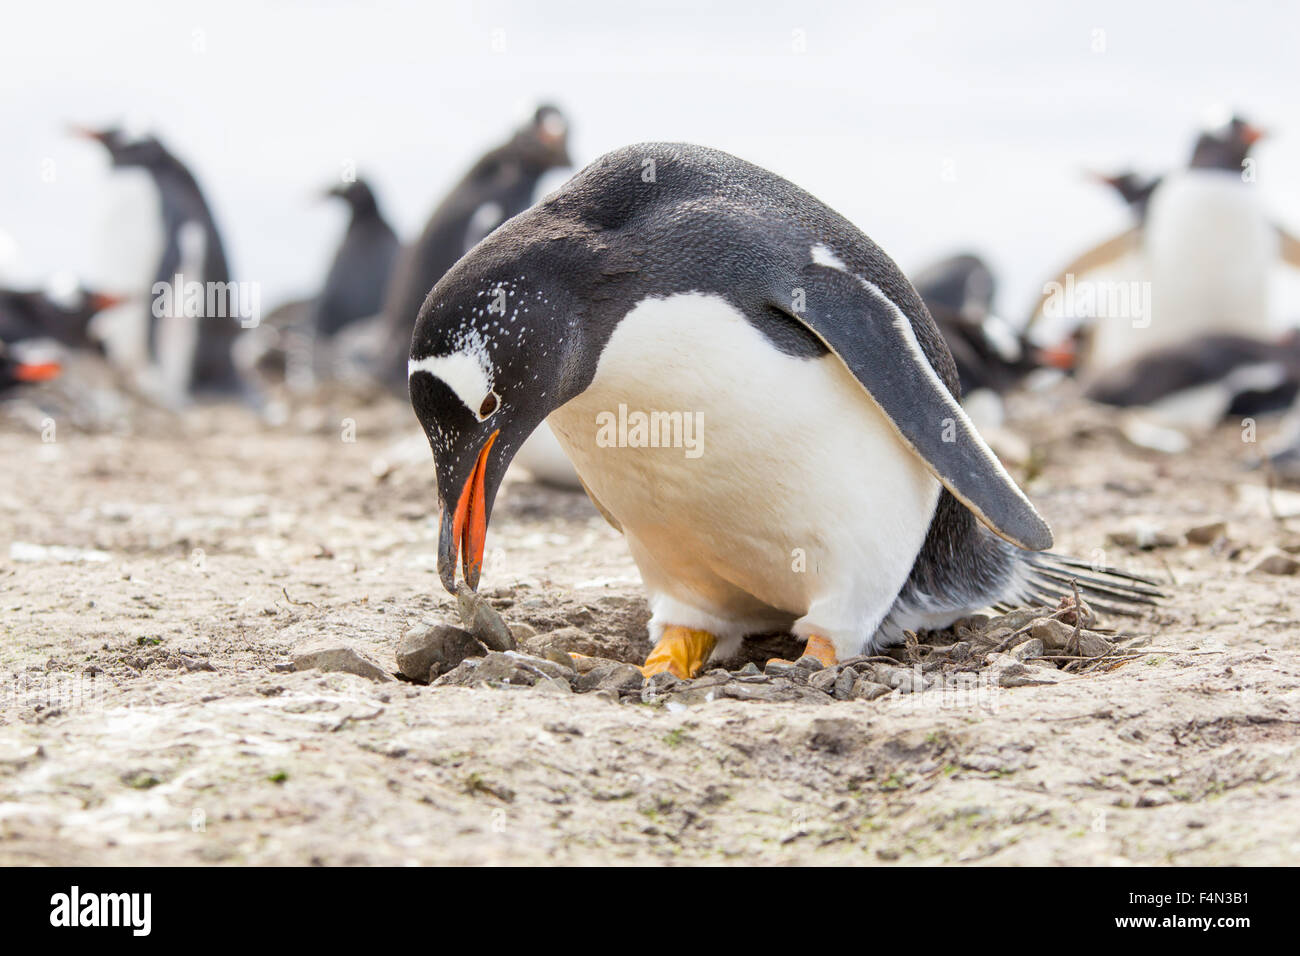 Gentoo Penguin building it's nest by carefully placing rocks and twigs with it's beak. Falkland Islands. - Stock Image